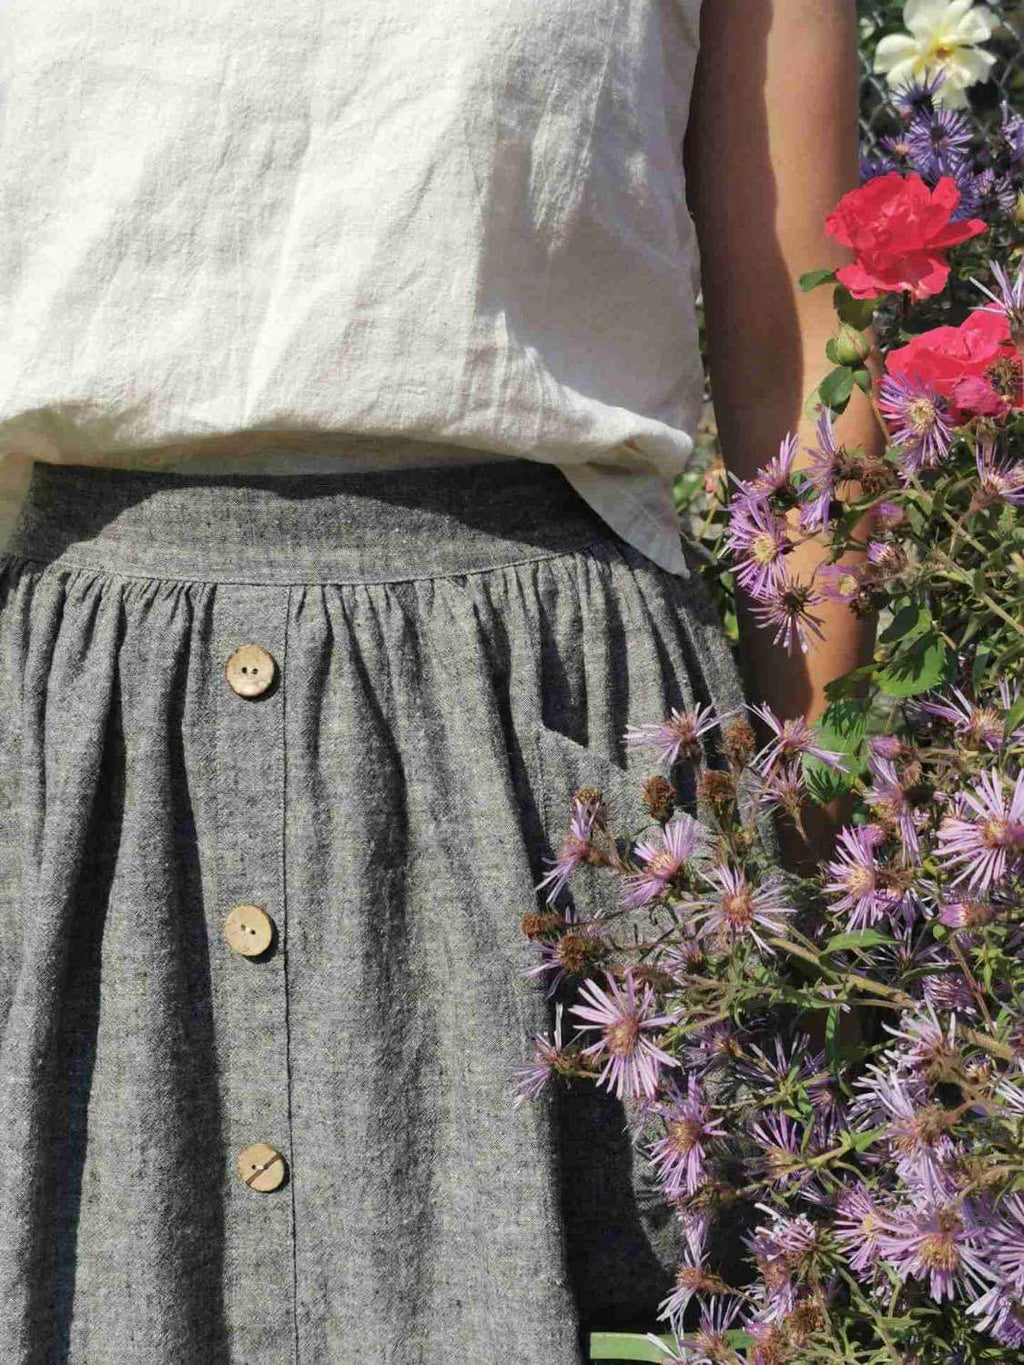 The Skirt - Hemp Organic Cotton